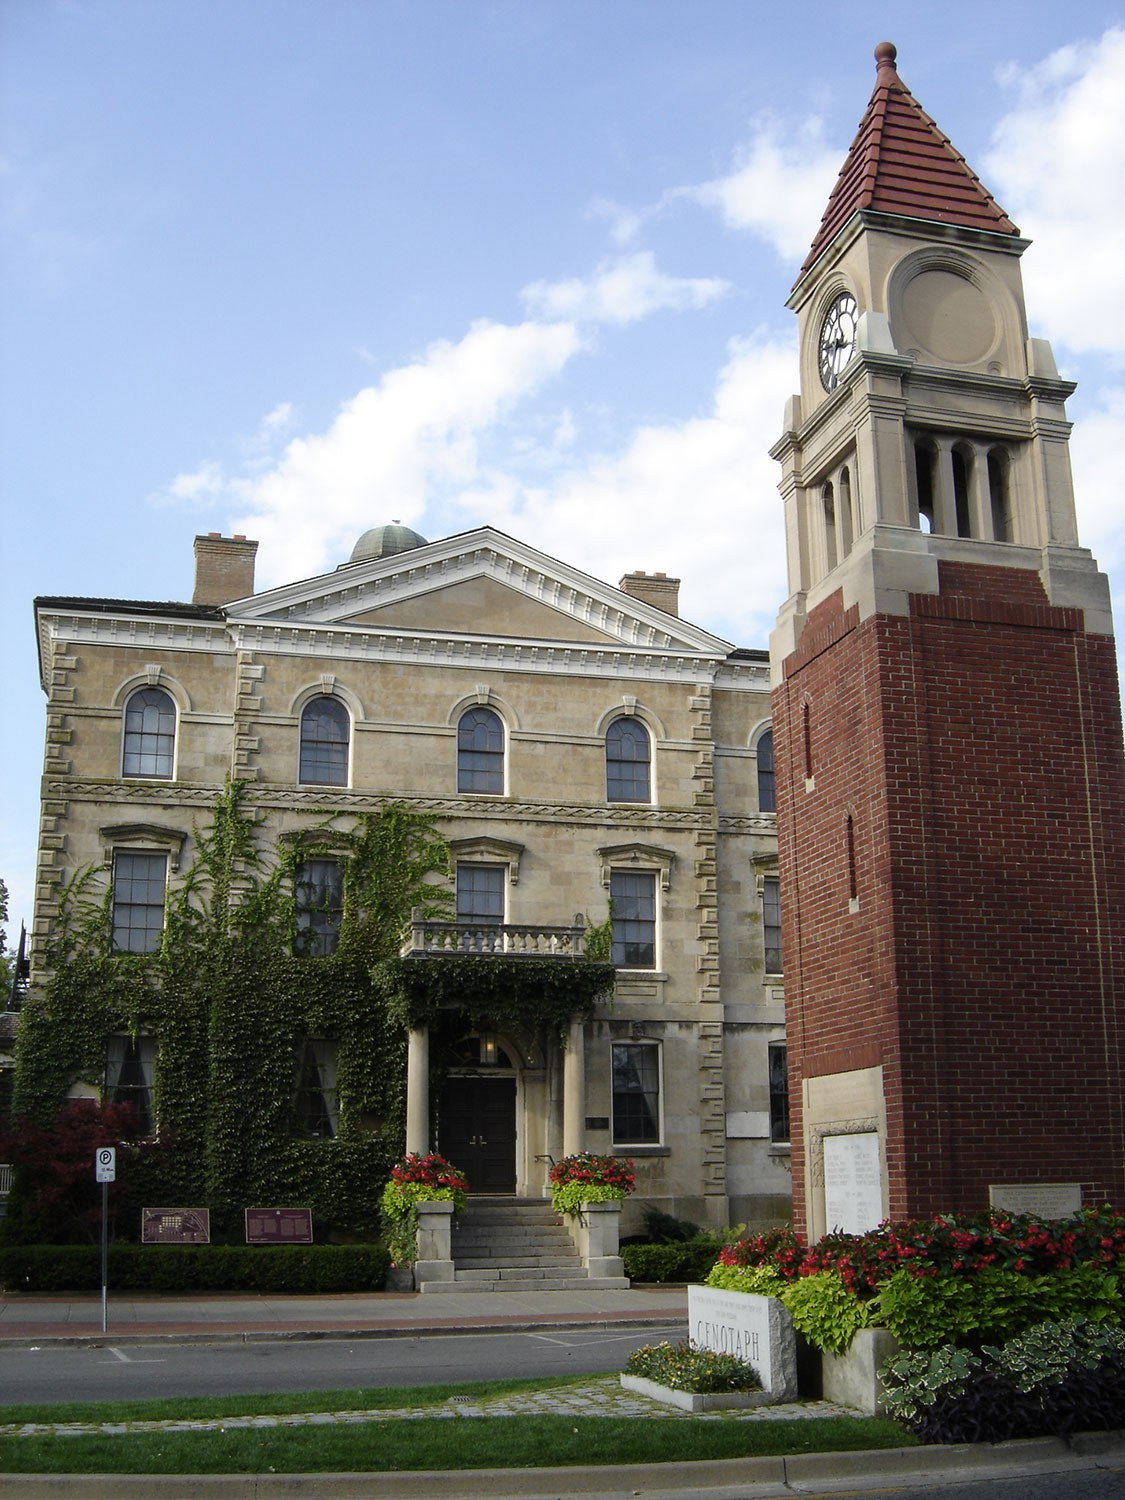 Downtown Niagara-on-the-Lake – a frequently visited heritage conservation district.